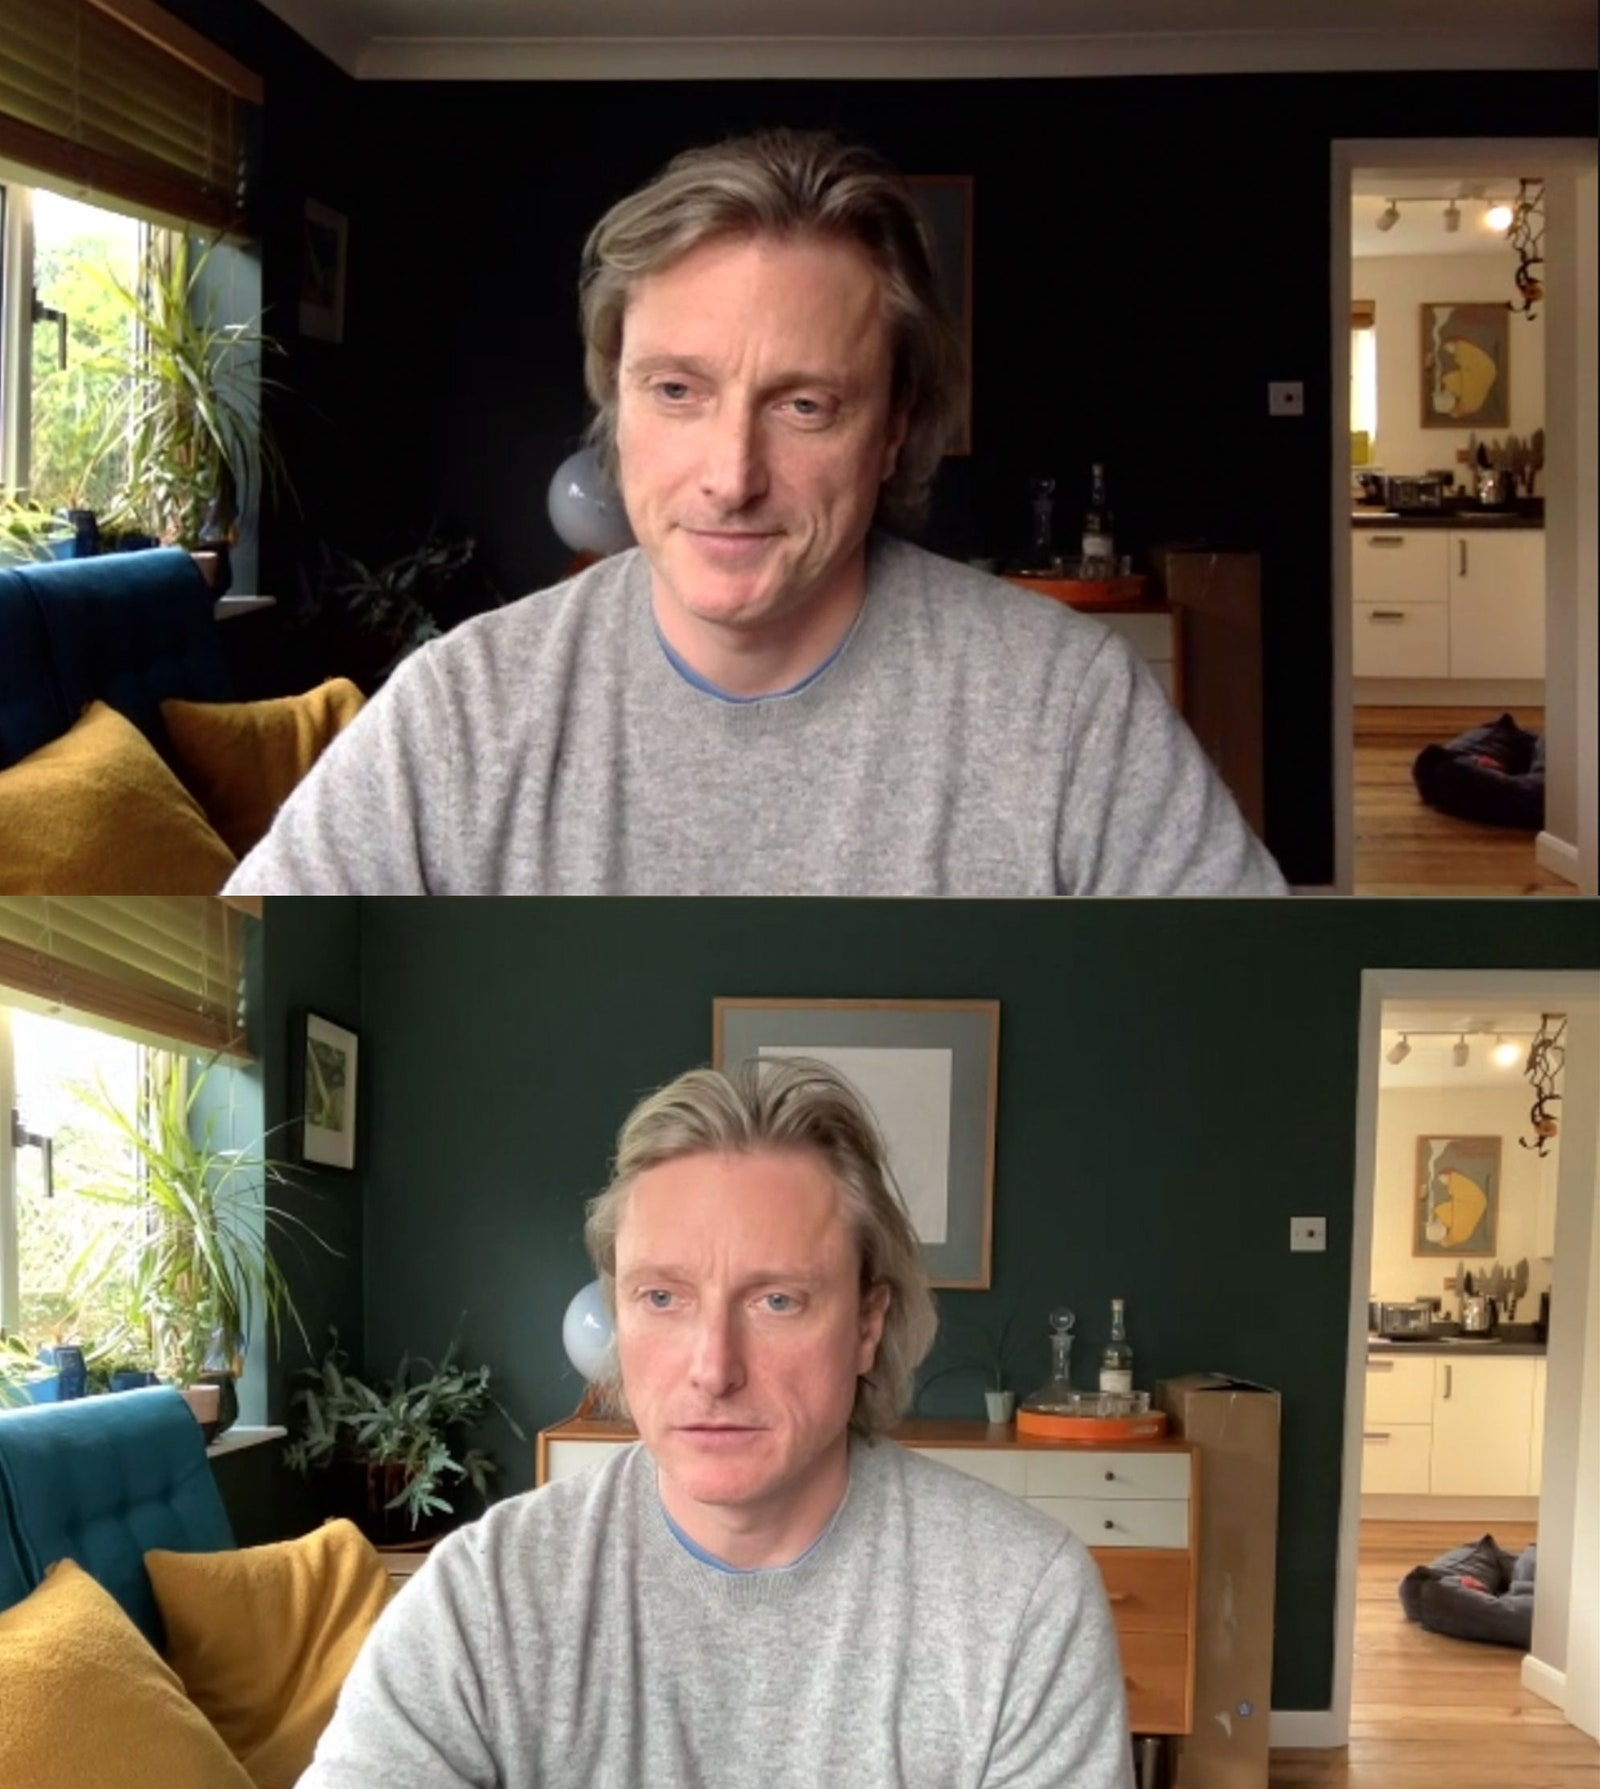 Top a MacBook Pro with a 720p FaceTime HD camera. Bottom the new iMac 1080p version